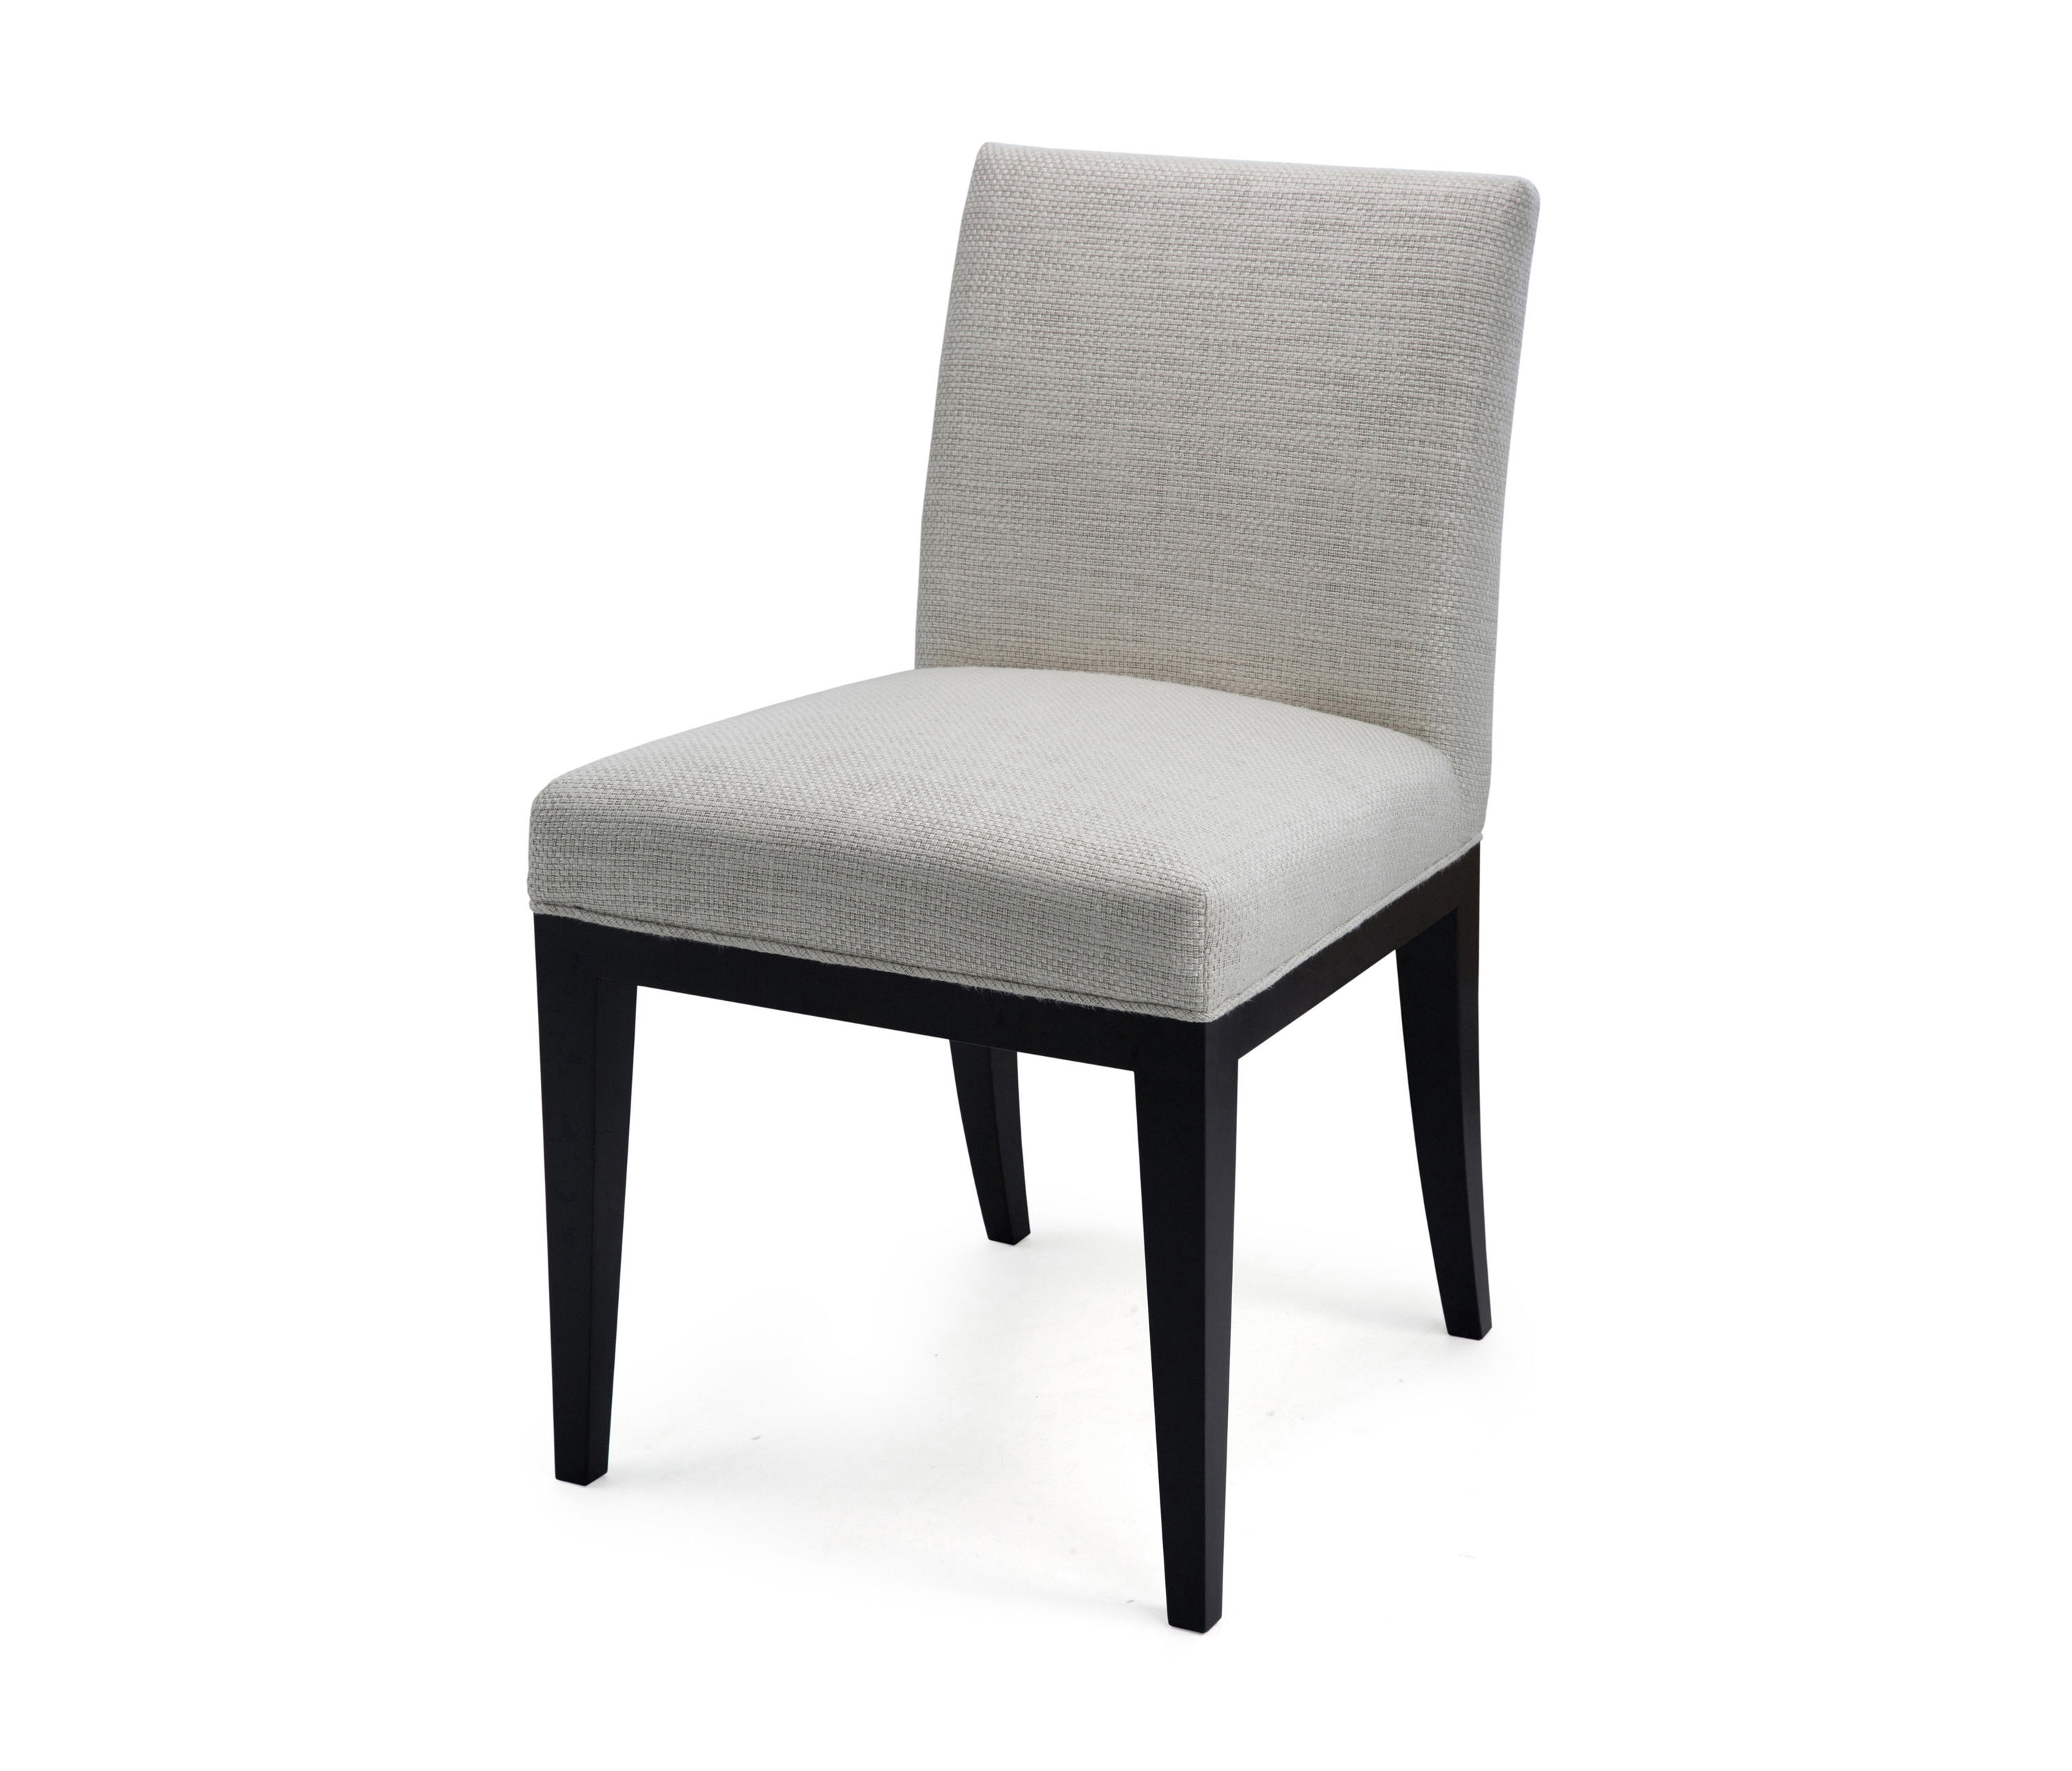 Great Byron Dining Chair By The Sofa U0026 Chair Company Ltd | Restaurant Chairs ...